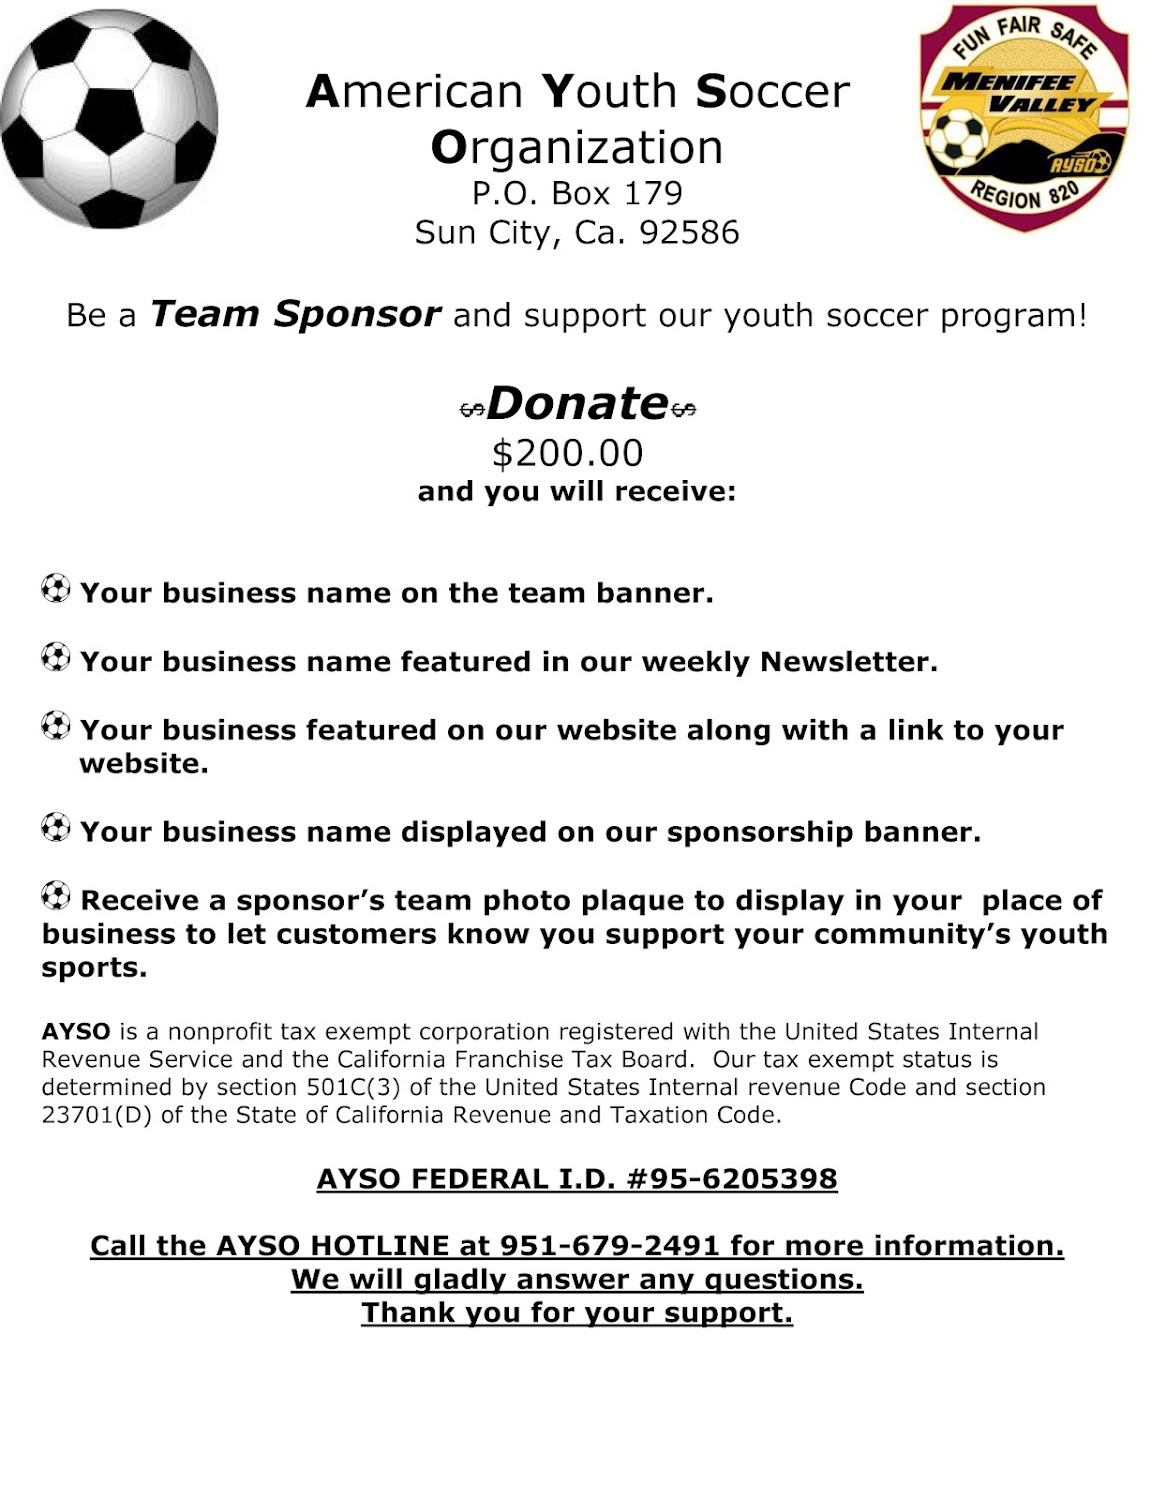 Sample donation request letters for sports teams for Sponsorship letter template for sports team